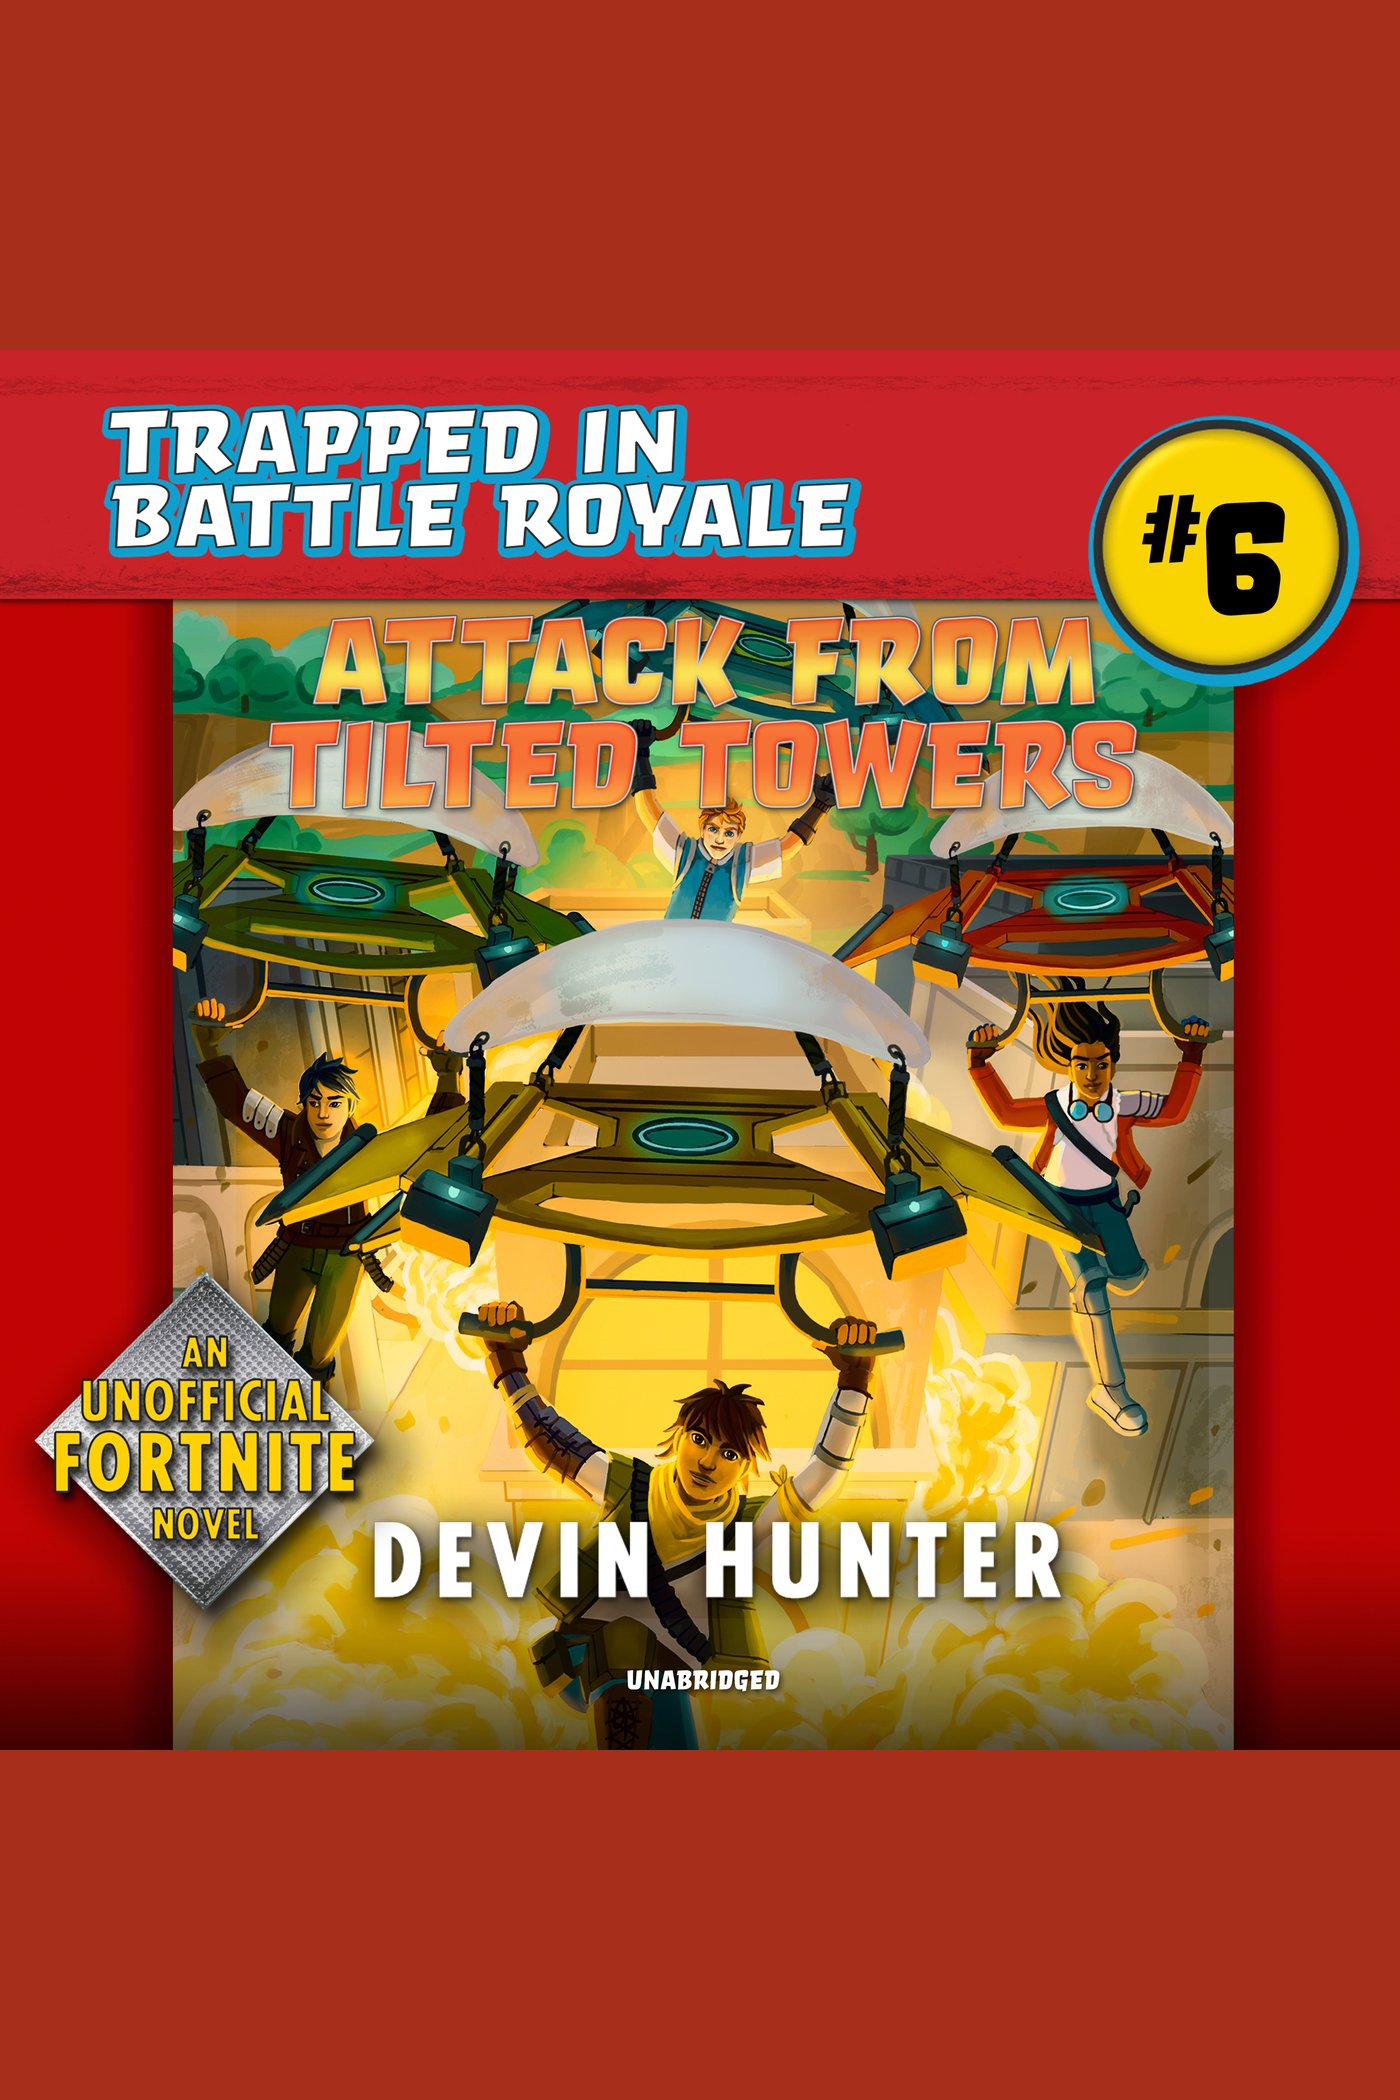 Attack From Tilted Towers An Unofficial Fortnite Adventure Novel